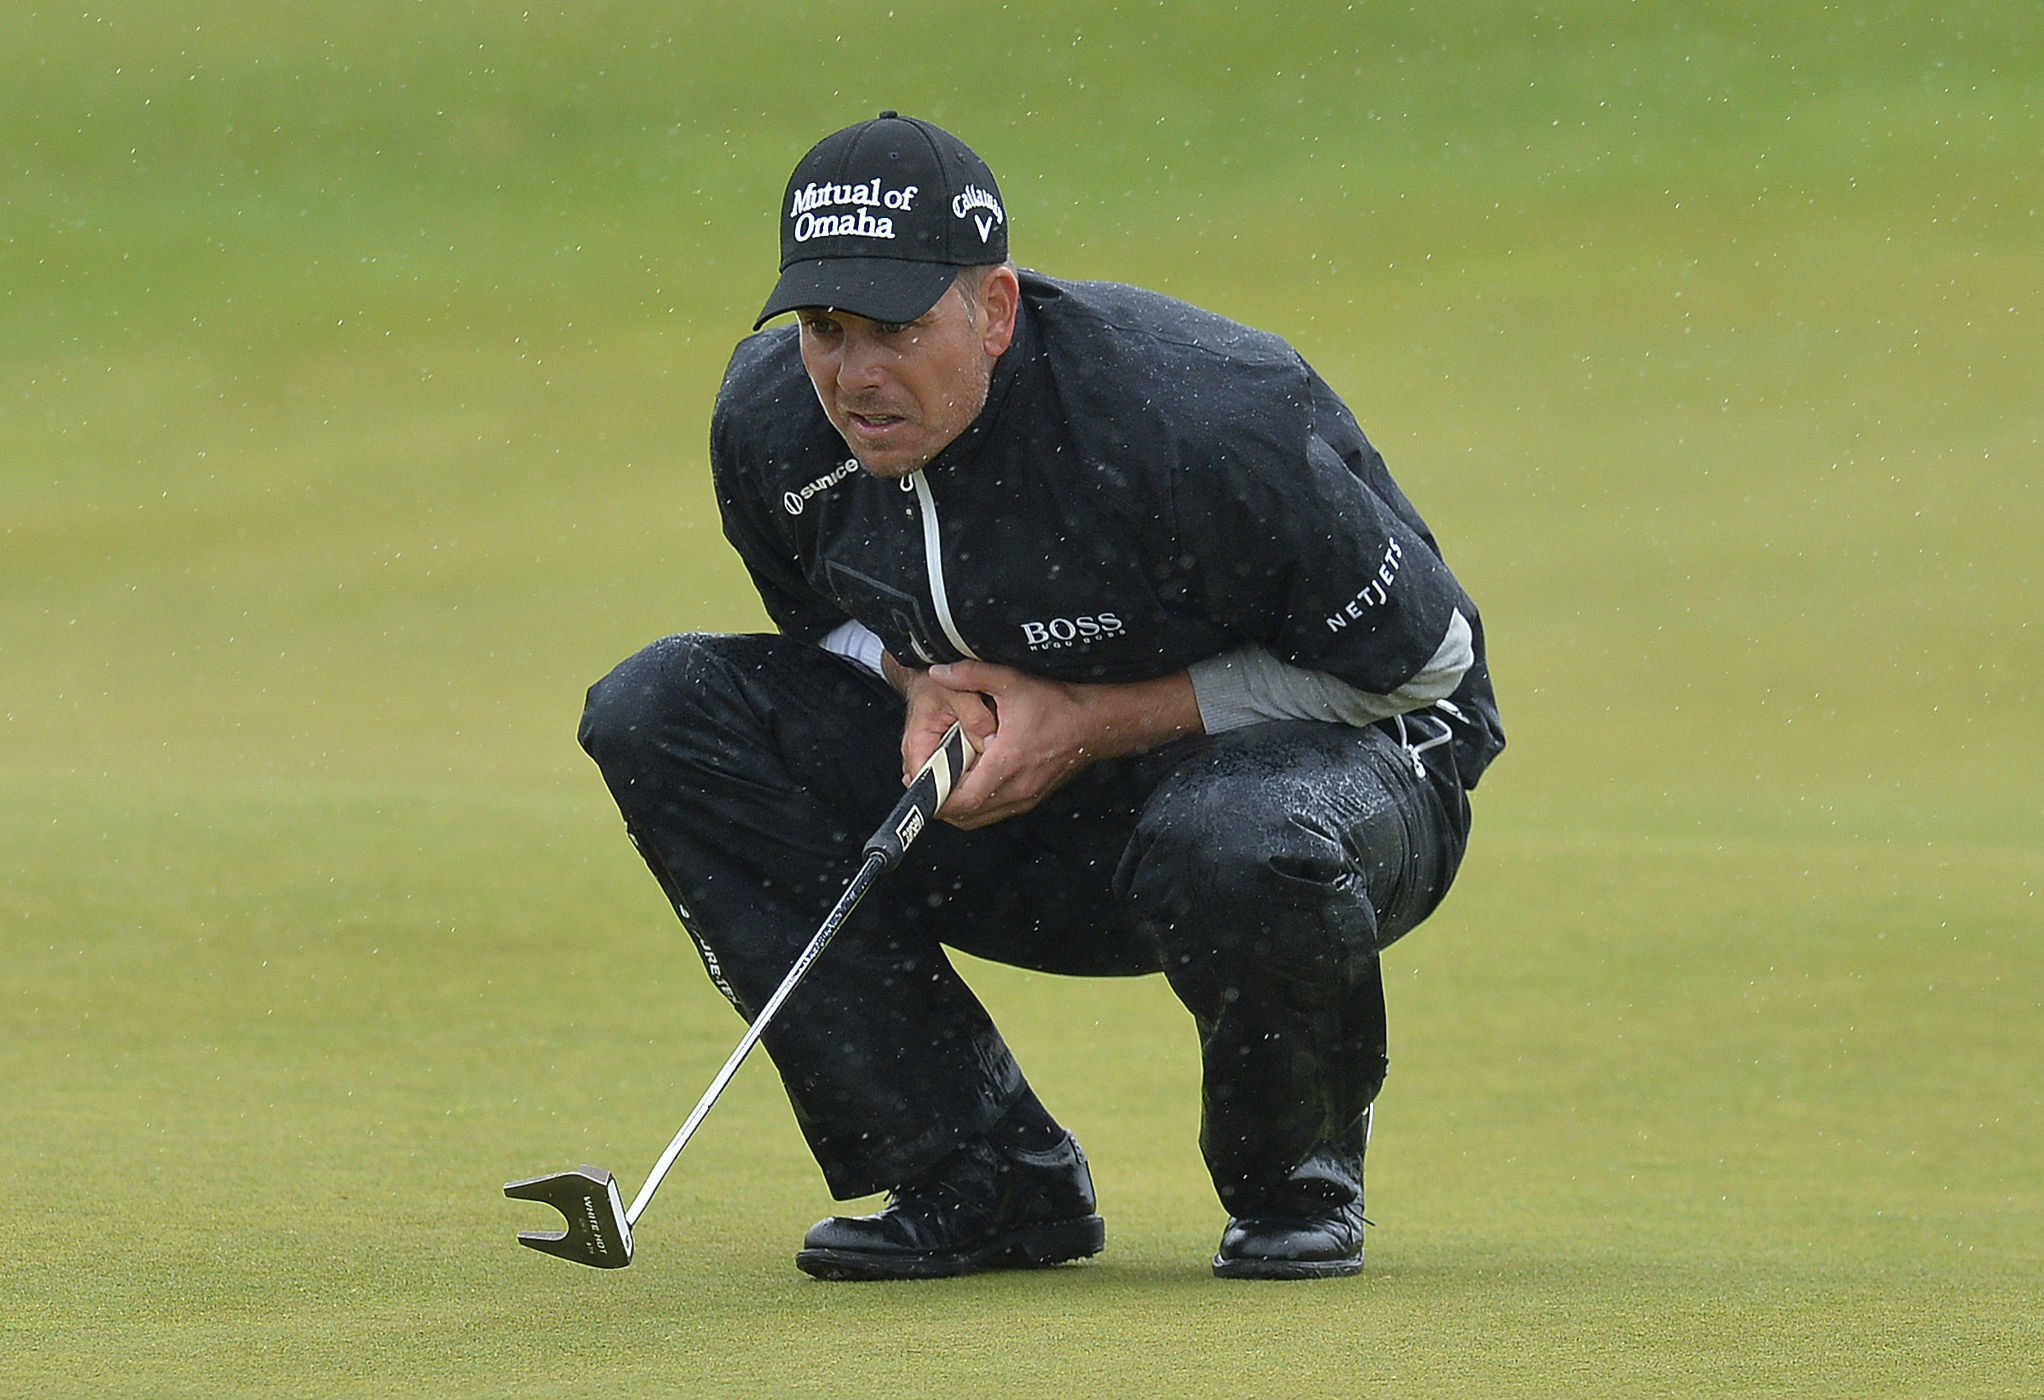 Sweden's Henrik Stenson prepares to putt on the 5th hole on day three of the Scottish Open at Dundonald Links, Troon, Scotland, Saturday July 15, 2017. (Mark Runnacles/PA via AP)